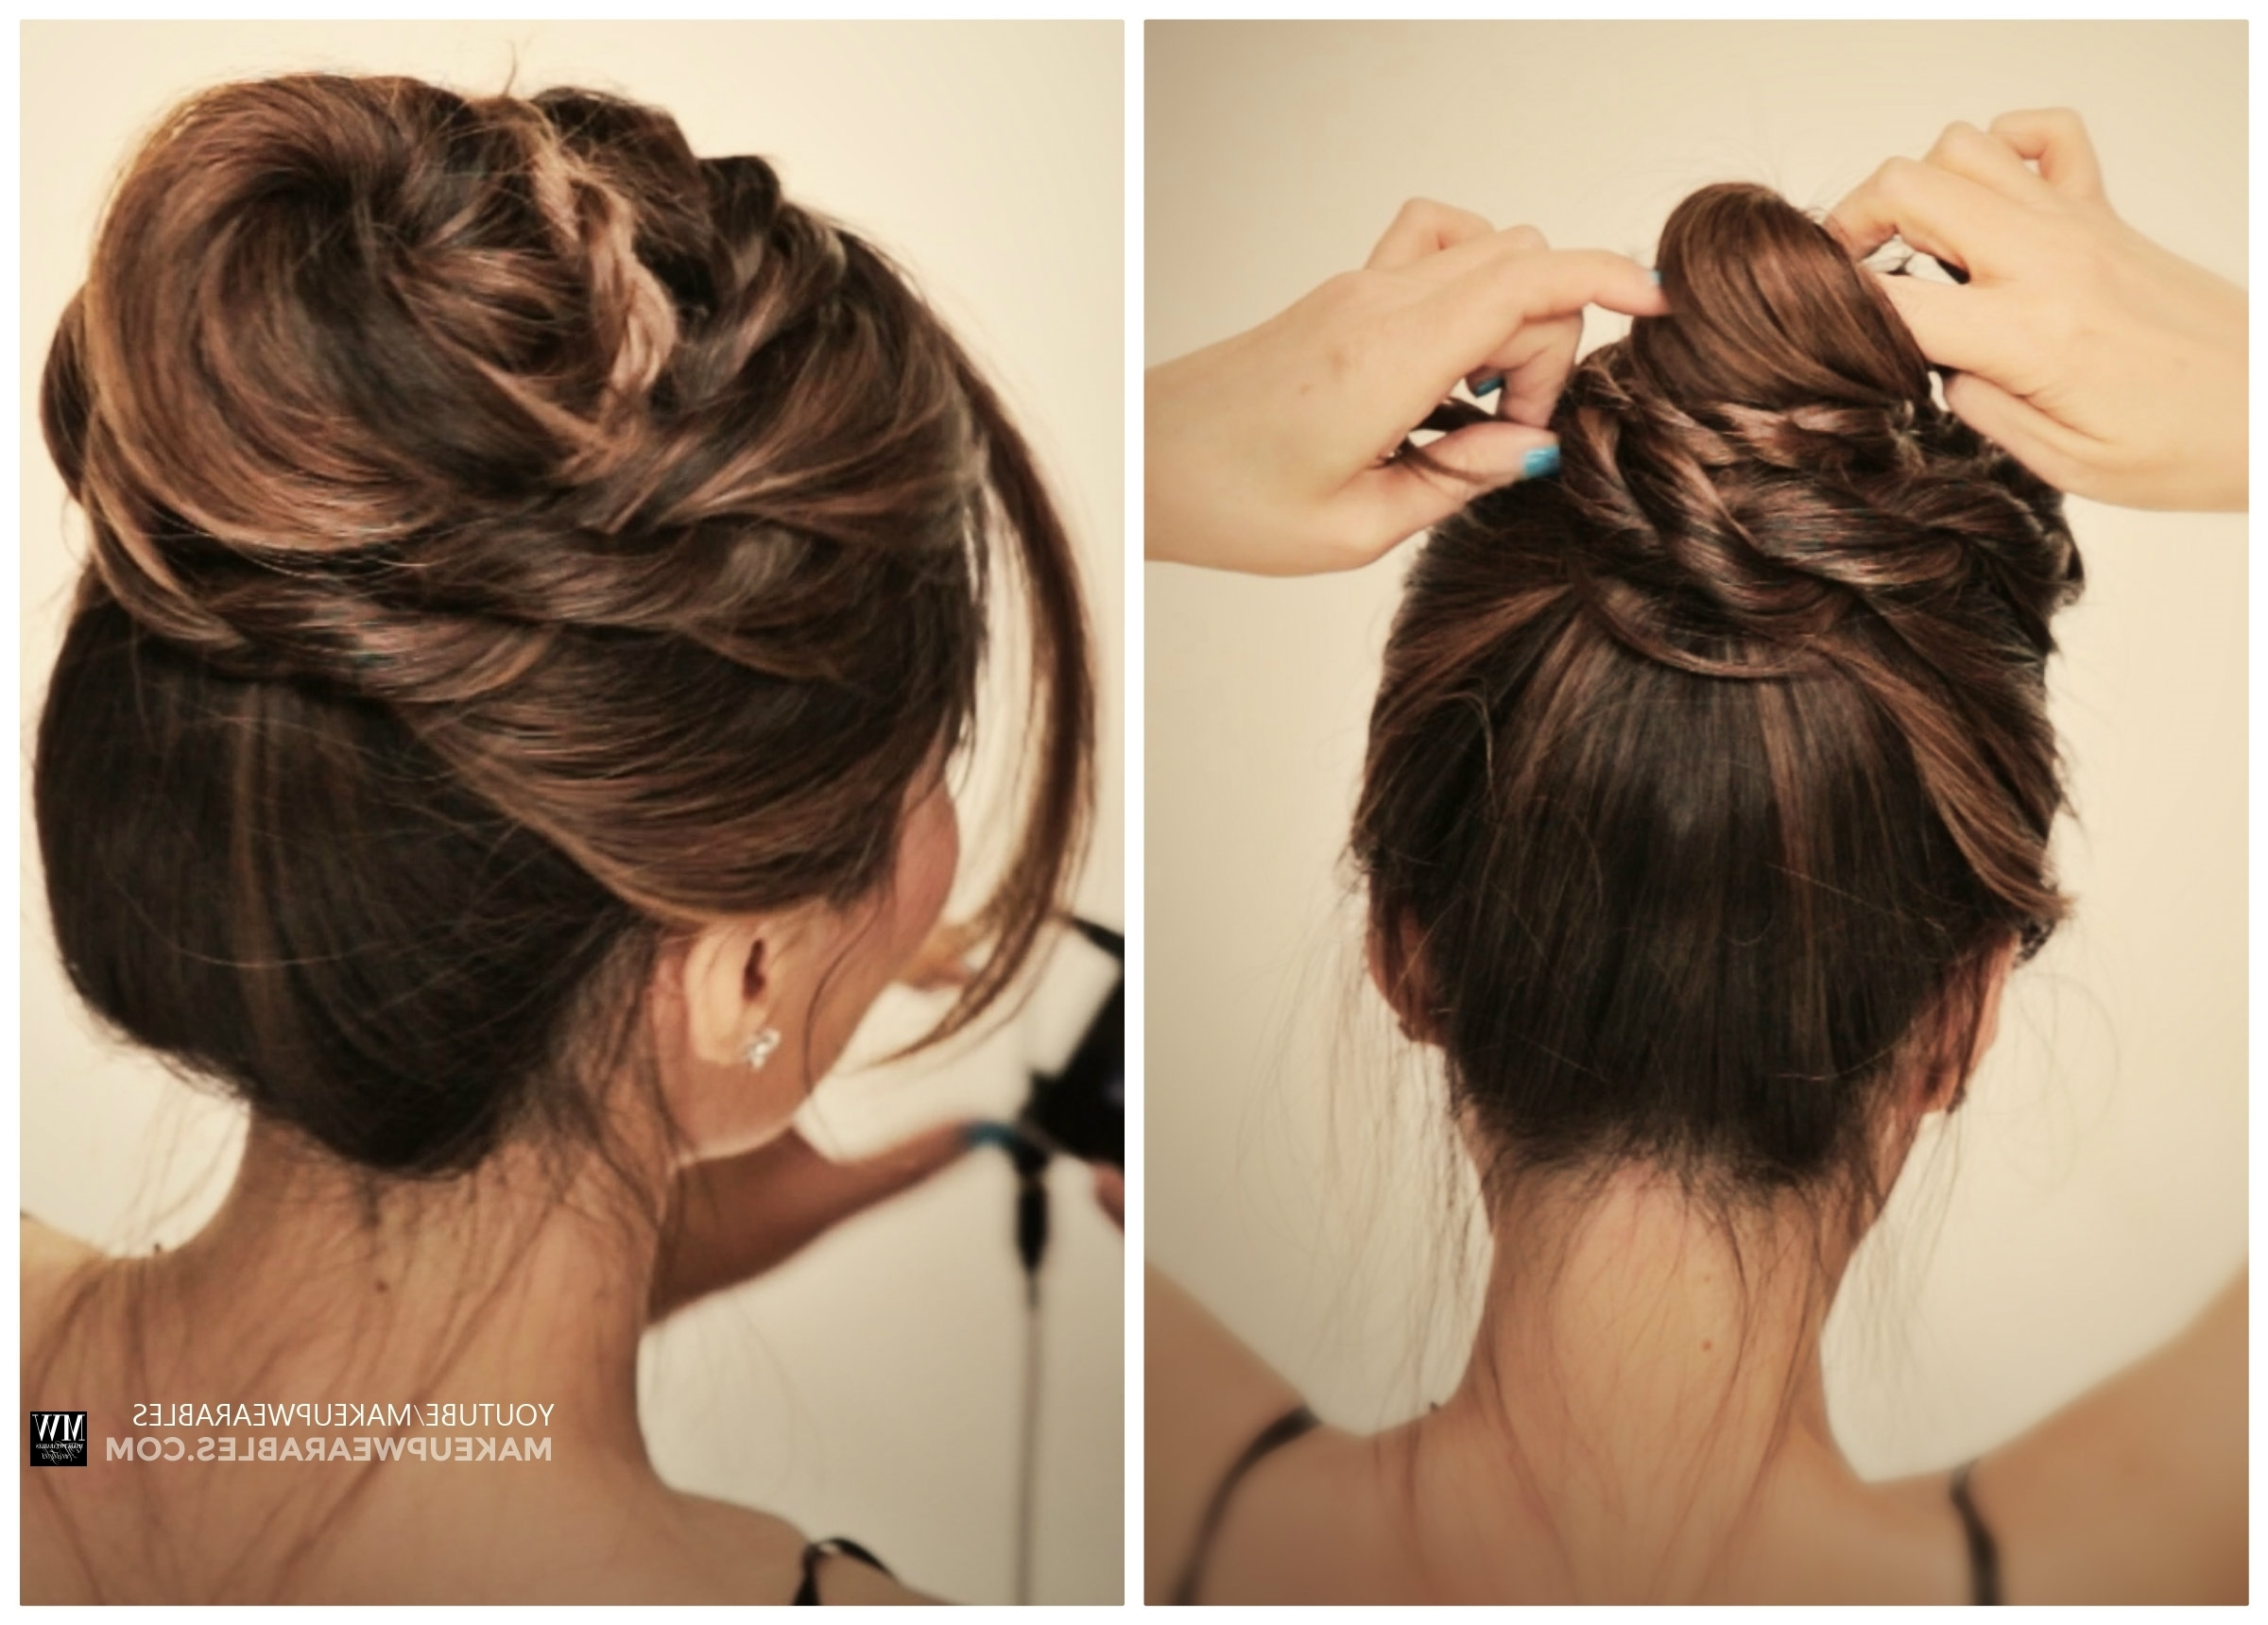 How To: 5 Amazingly Cute + Easy Hairstyles With A Simple Twist Intended For Long Hair Updo Hairstyles For Work (View 11 of 15)